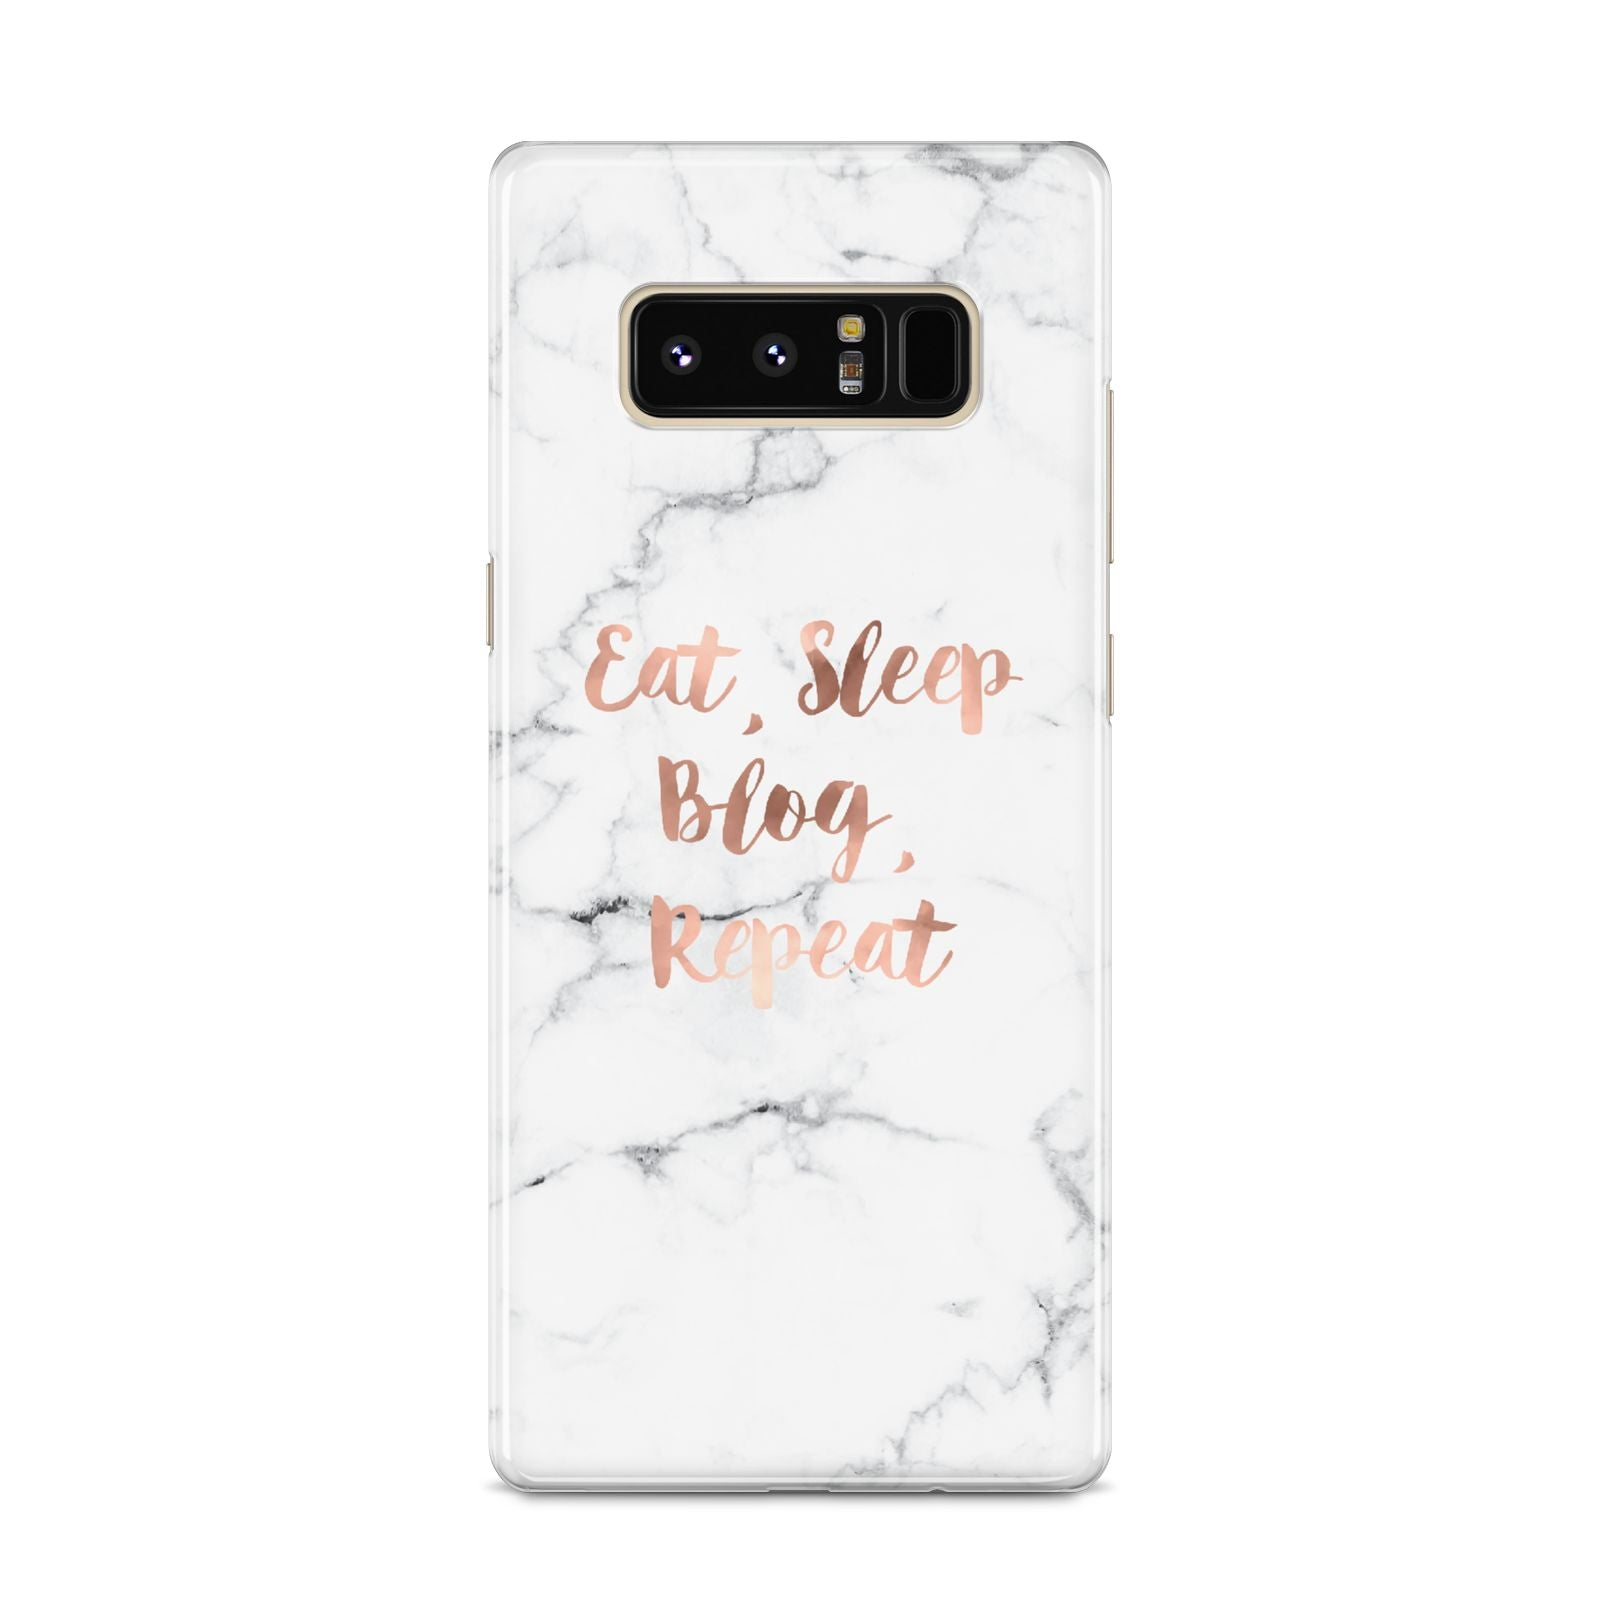 Eat Sleep Blog Repeat Marble Effect Samsung Galaxy S8 Case